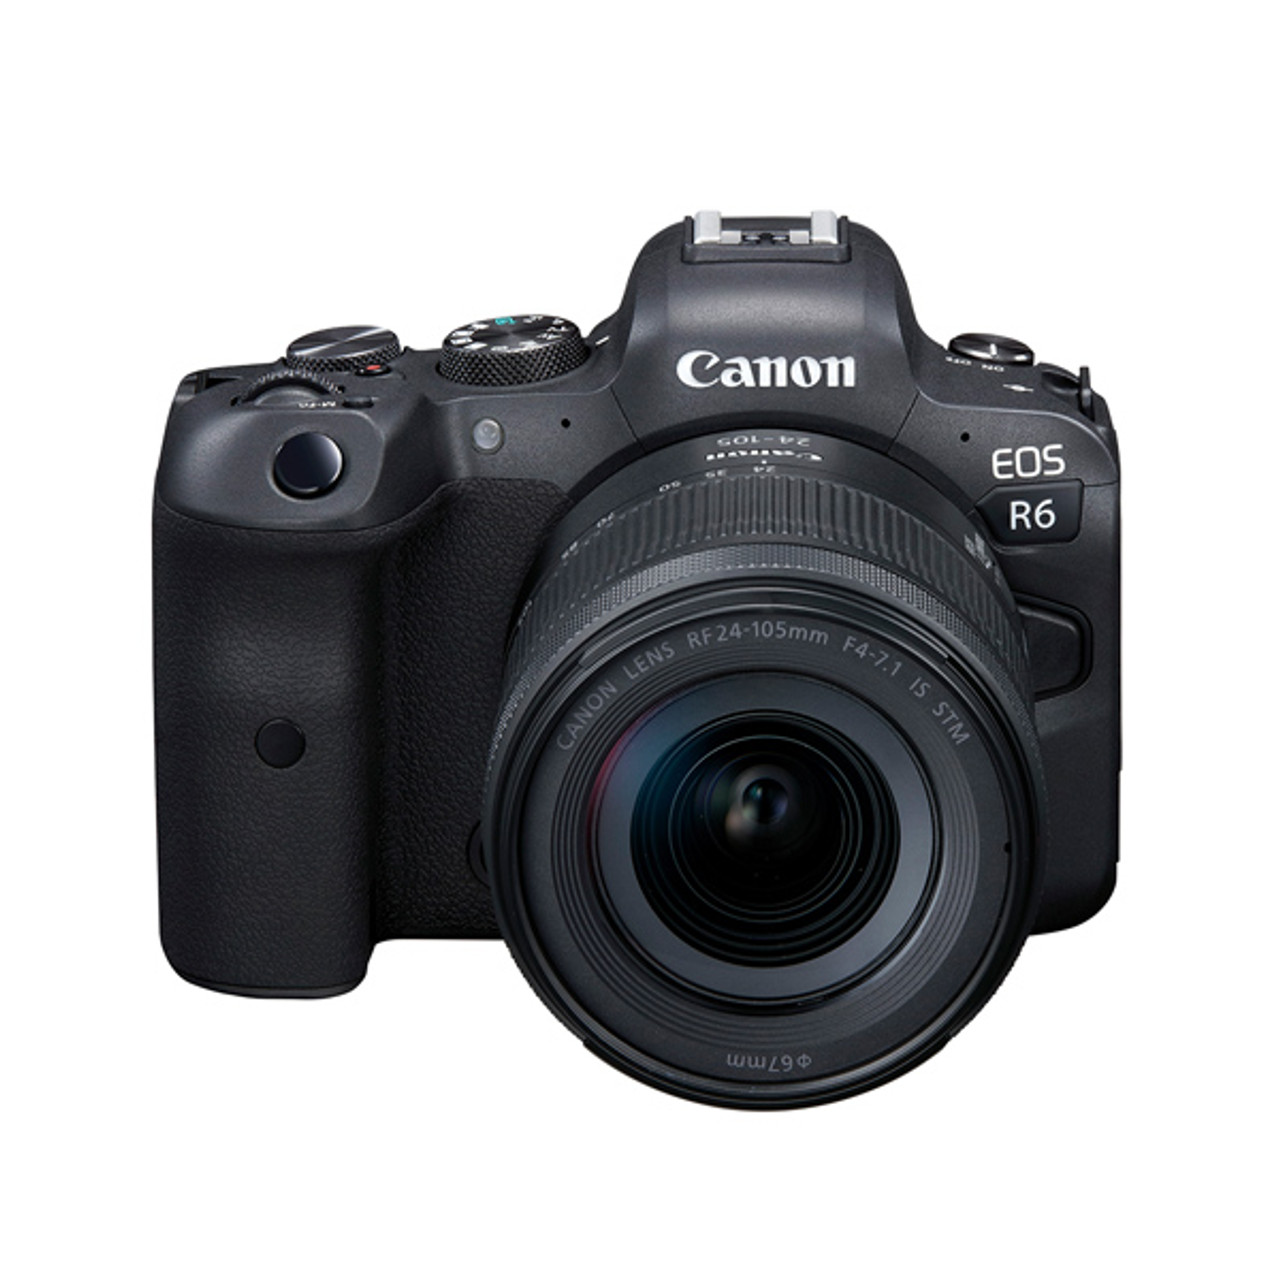 Canon EOS R6 24-105mm F4-7.1 STM Kit